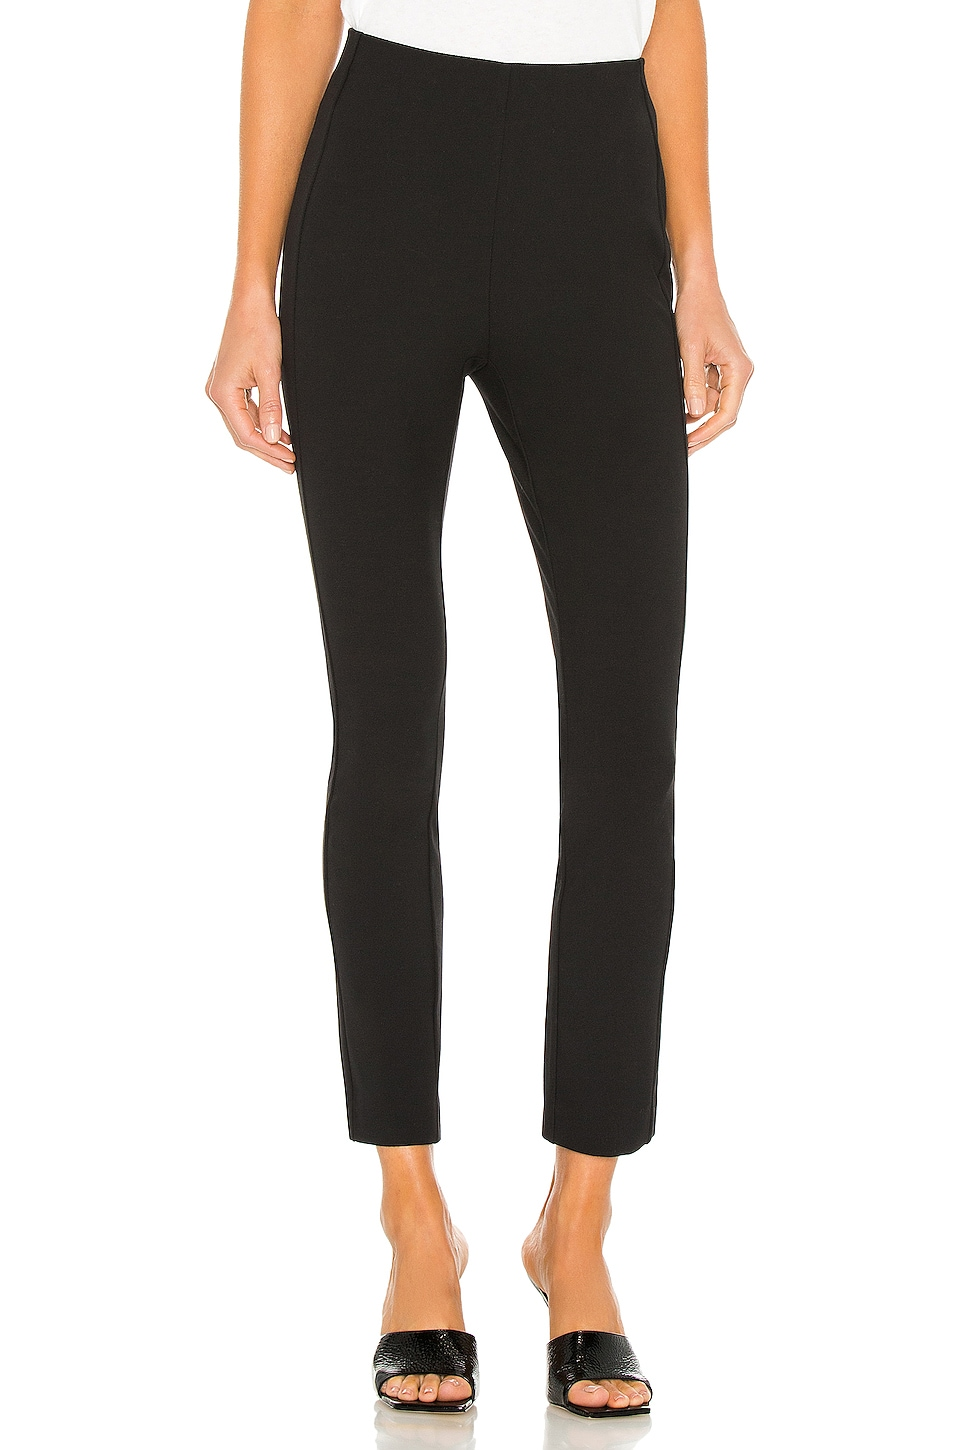 Rag & Bone Simone Pant in Black